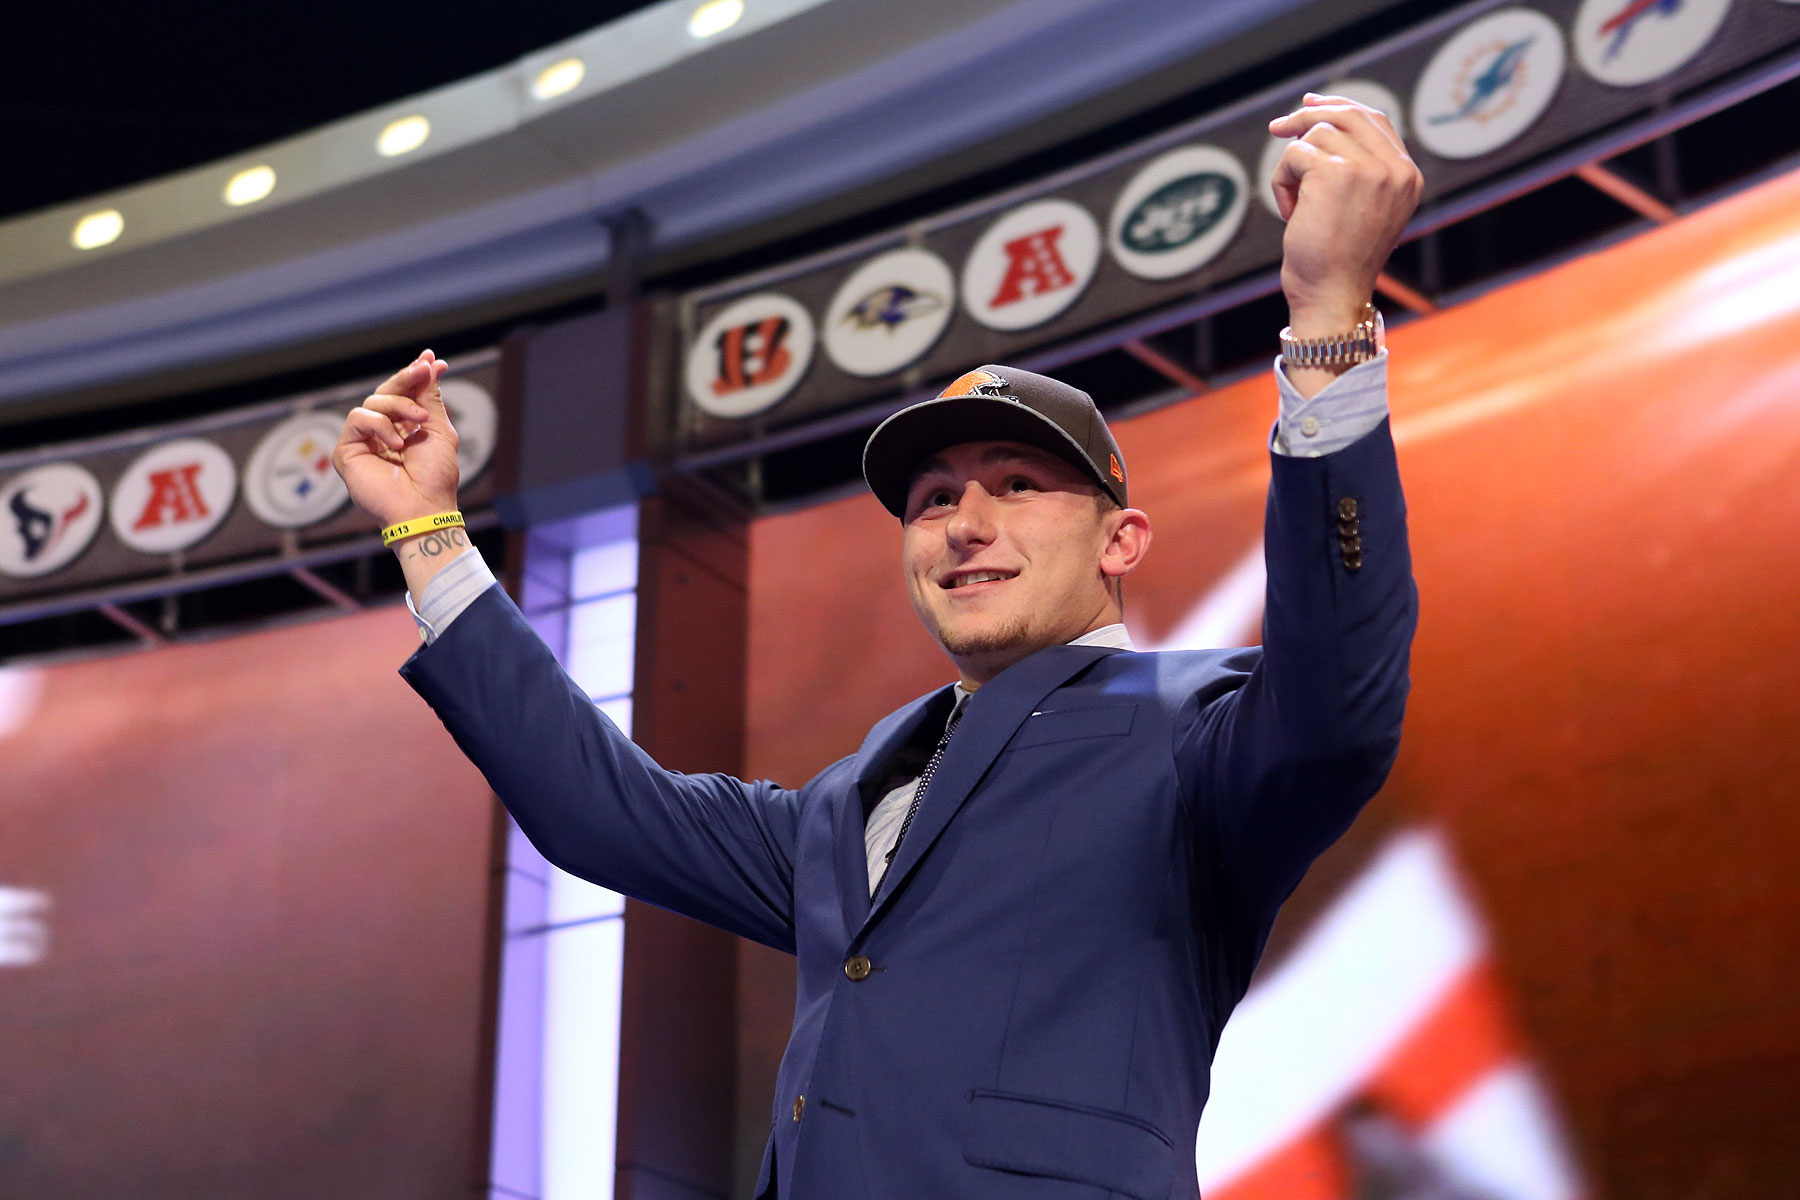 Johnny Manziel gestures on stage after being selected as the number twenty-two overall pick in the first round of the 2014 NFL Draft to the Cleveland Browns at Radio City Music Hall